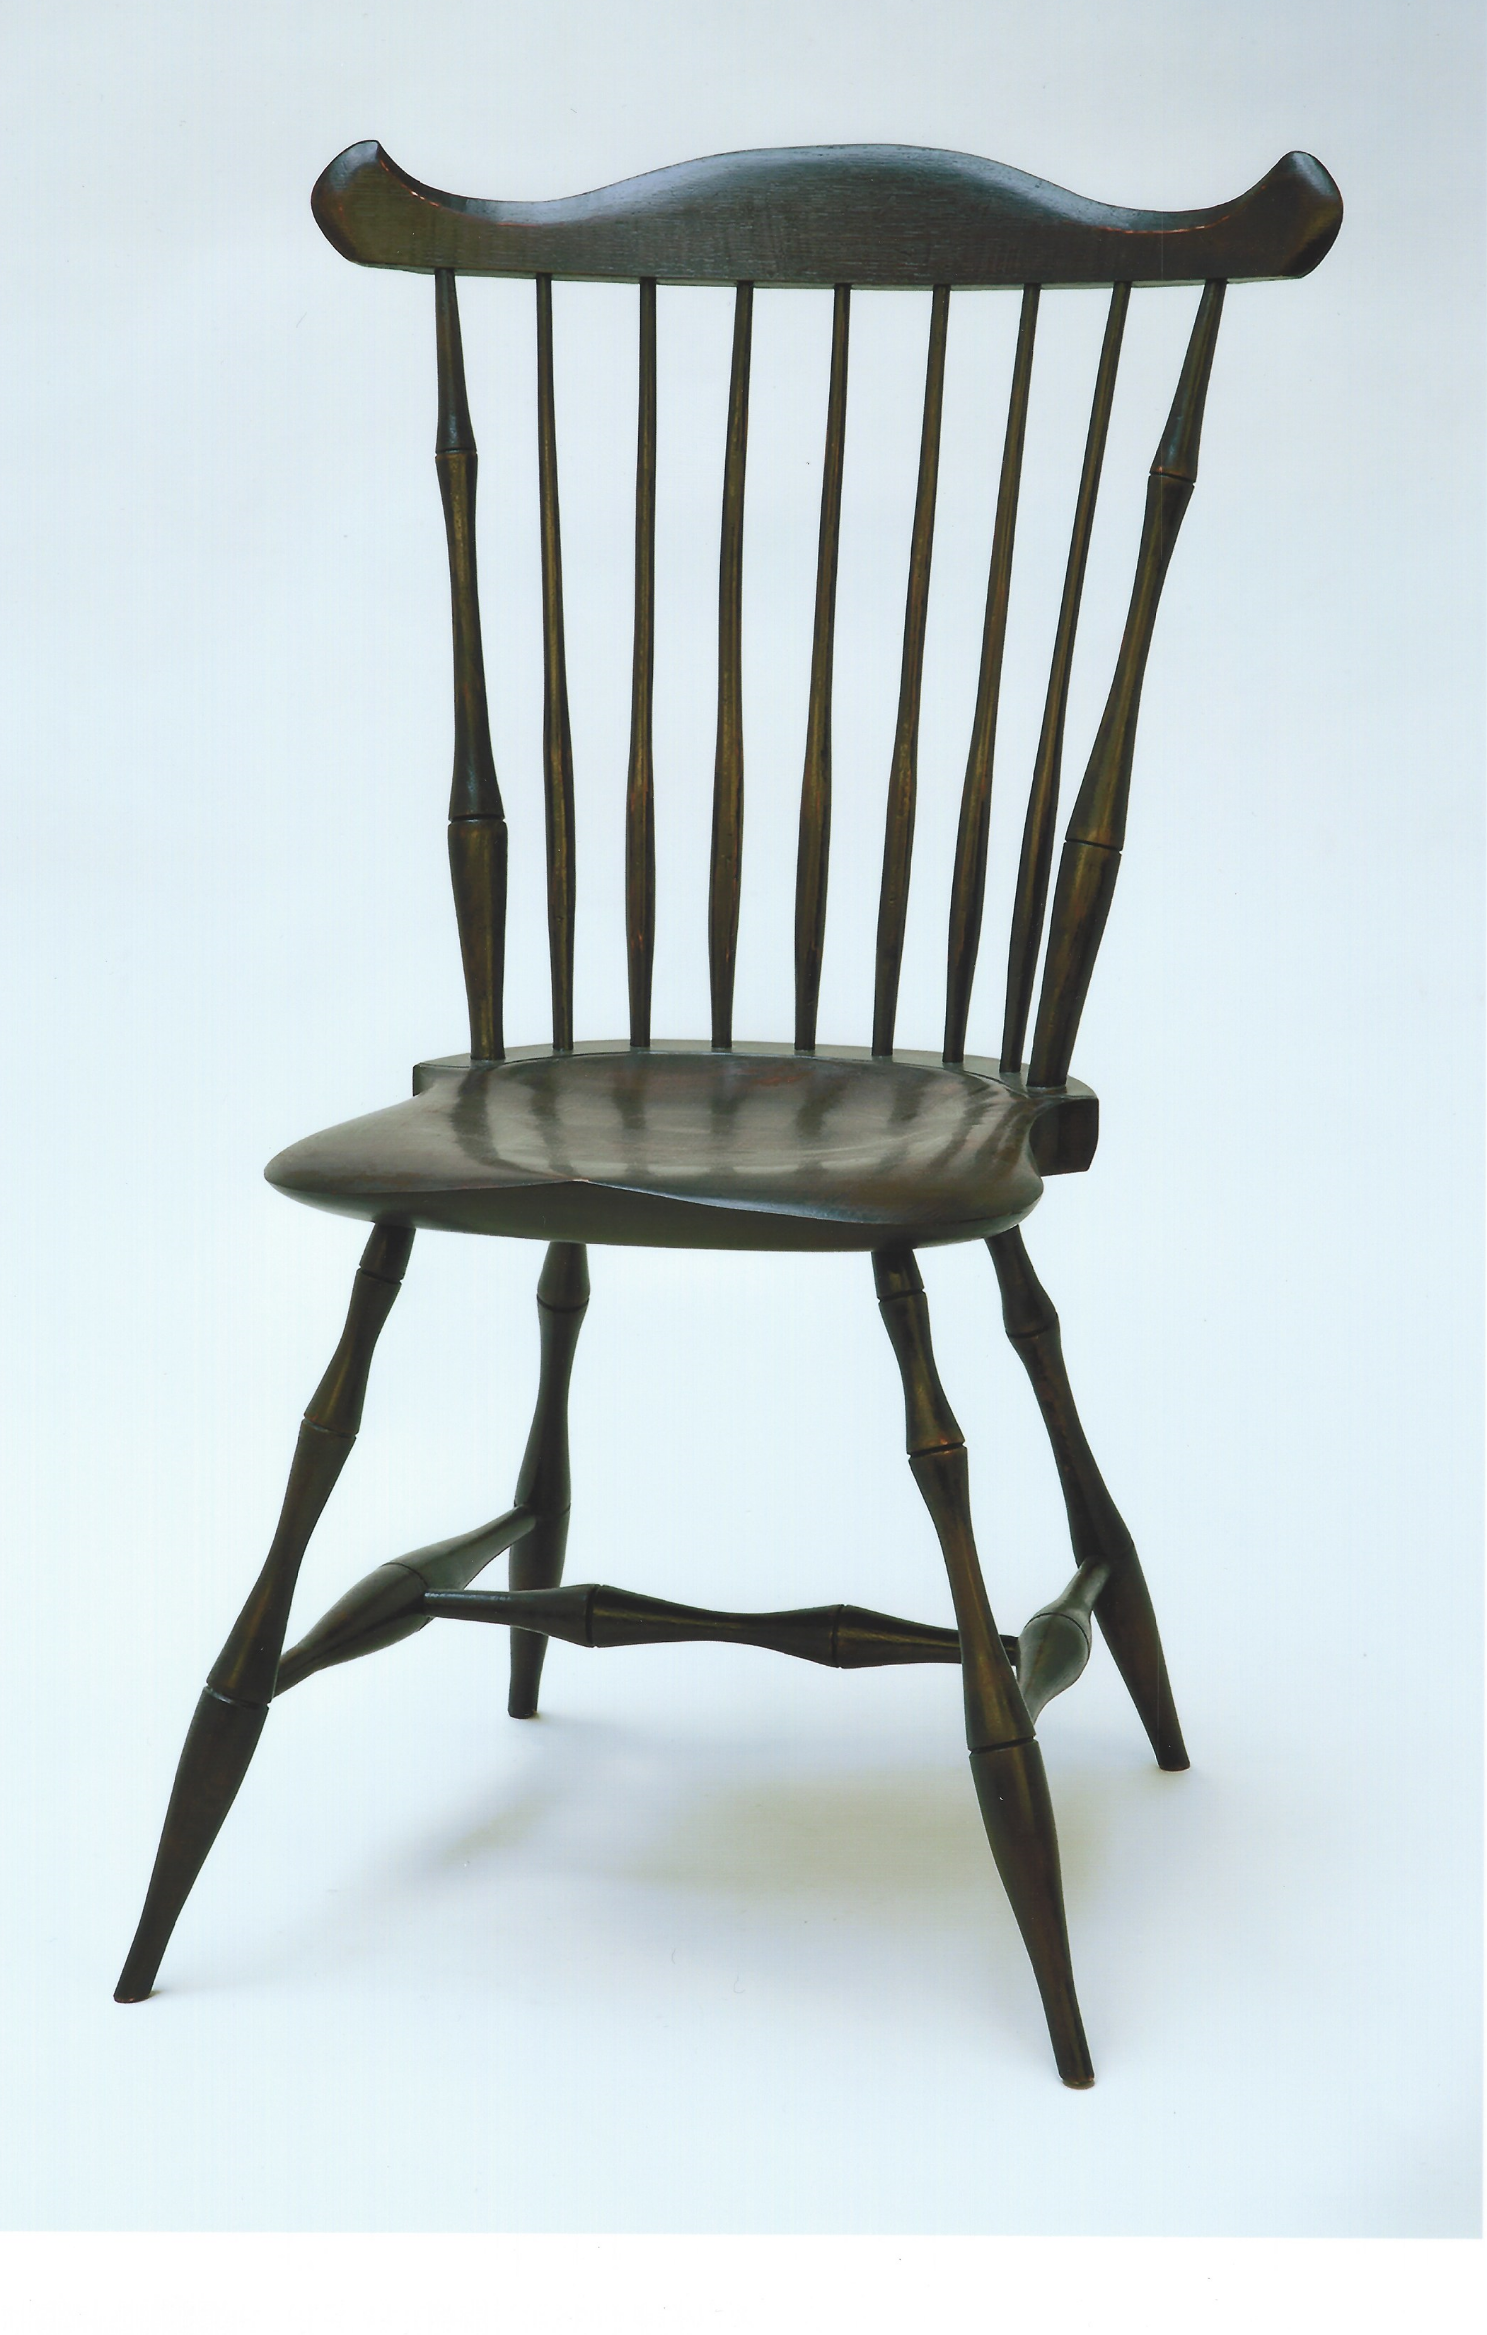 This Windsor Chair has maple legs and stretchers, pine seat and white oak back. The legs, stretchers, and back were made with green wood. Clicking on the chair photo will show that the parts were cut and split from logs and then shaped, turned and steam bent into chair parts. Green wood is used to add strength to the chair. The finish is black over red milk paint and an oil and urethane top coat. The black milk paint is burnished until the red just starts to show through the black. This is done to give the chair a well used appearance. This chair is sold, but we would be glad to build one for you. The price is $1800.00